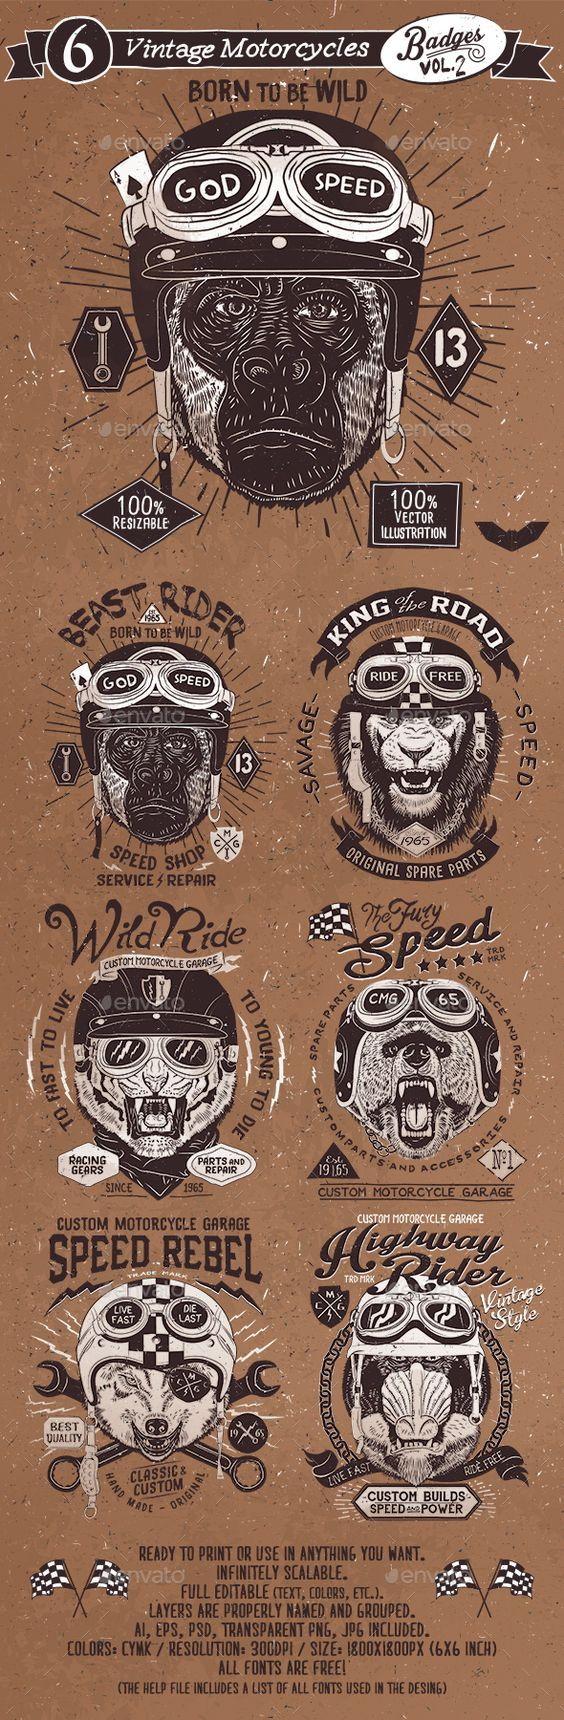 6 Vintage Motorcycles Badges Template PSD, Vector EPS, AI. Download here: http://graphicriver.net/item/6-vintage-motorcycles-badges-vol2/15317344?ref=ksioks: